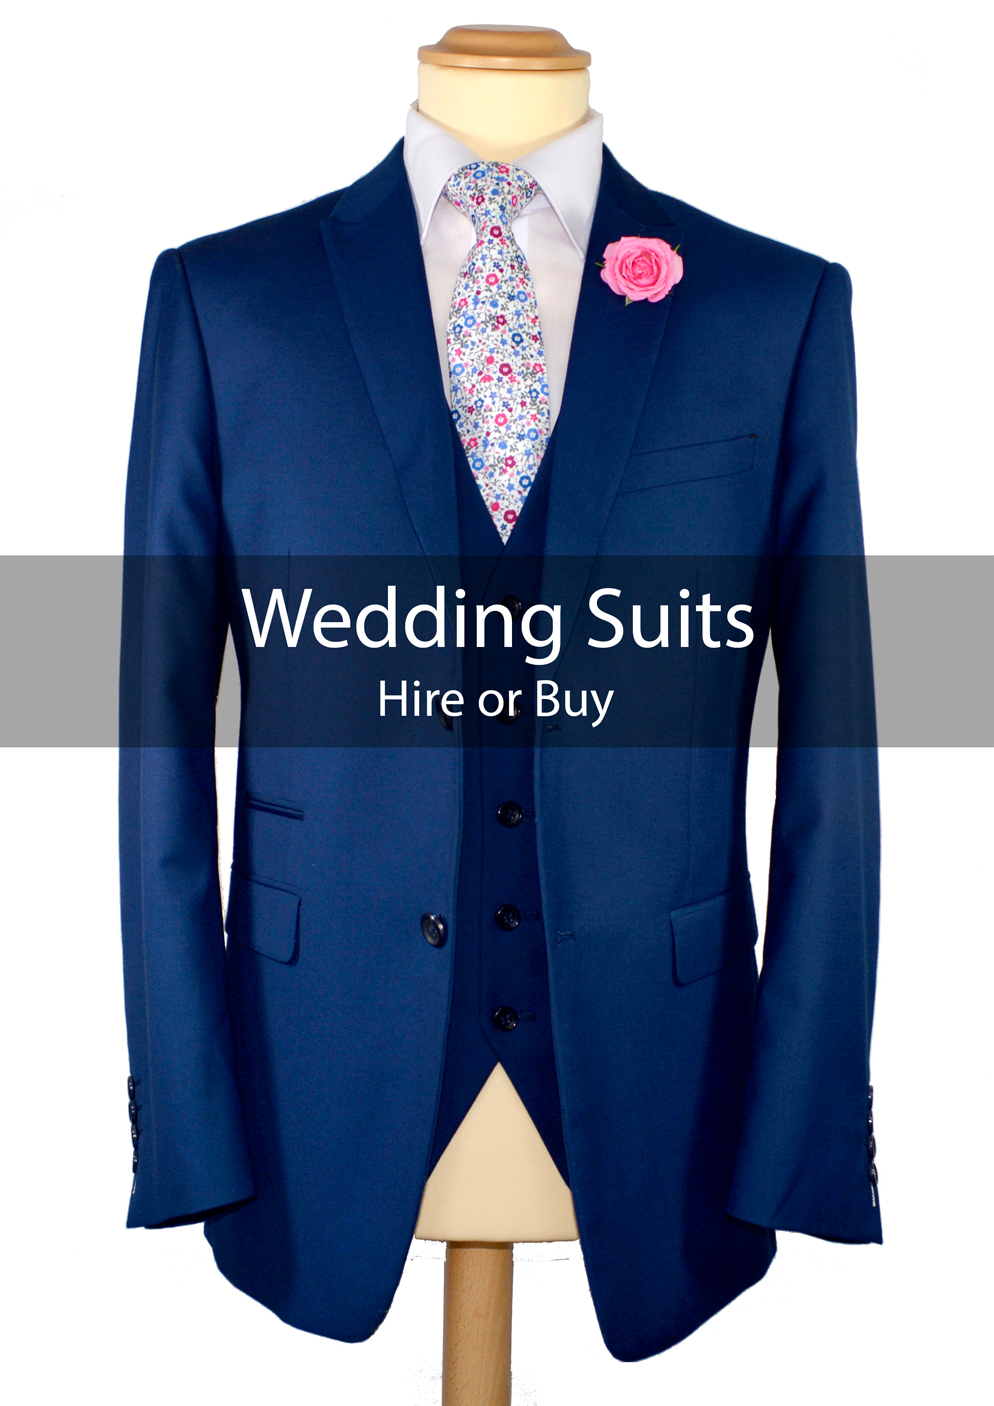 Wedding-Suits-H-or-B.jpg